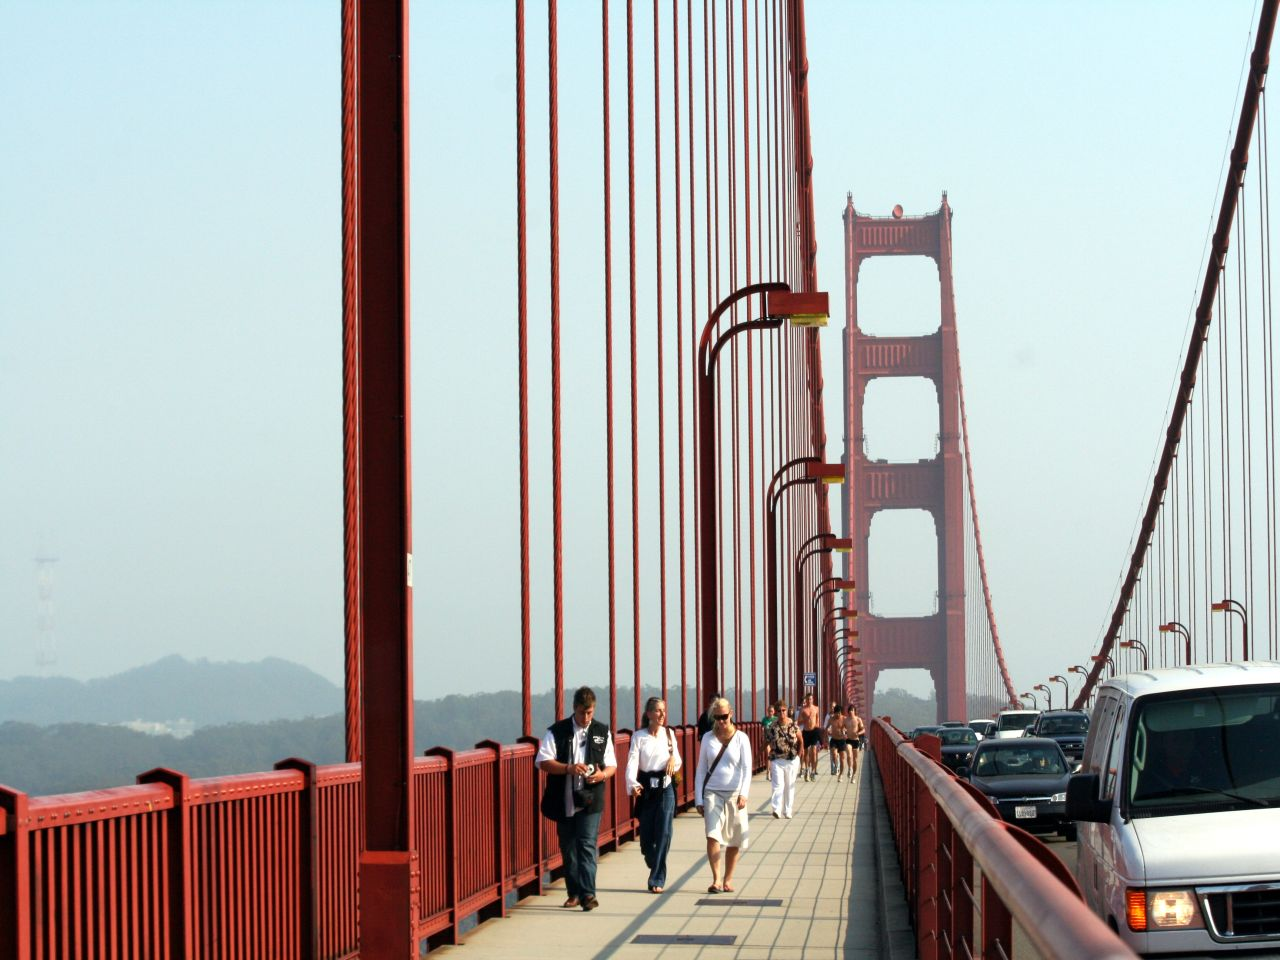 Walking Golden Gate Bridge © Jondoeforty1/Flickr